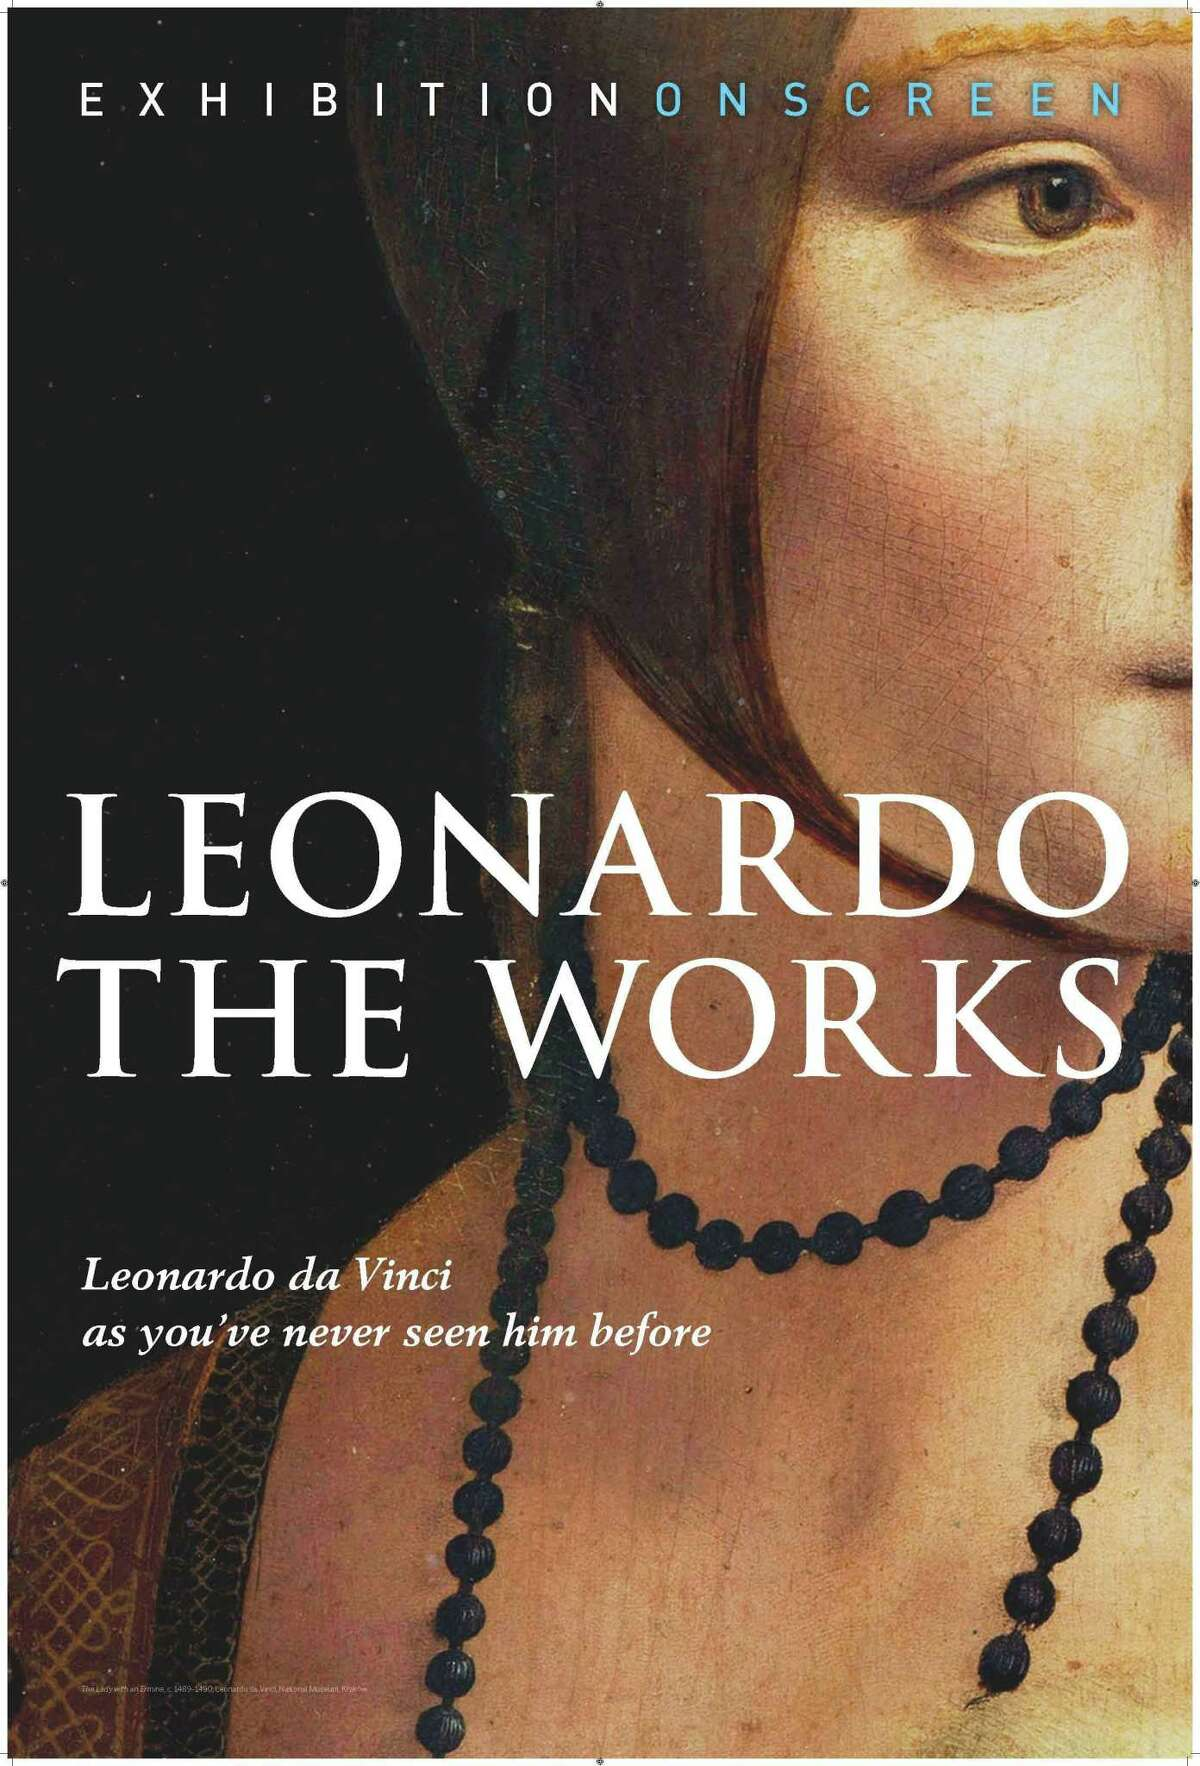 """Exhibition on Screen, the award-winning cinematic series that explores the biographies of history's most revered artists, continues at Stamford's Avon Theatre with screenings of """"Leonardo: The Works"""" on October 30 and November 2."""